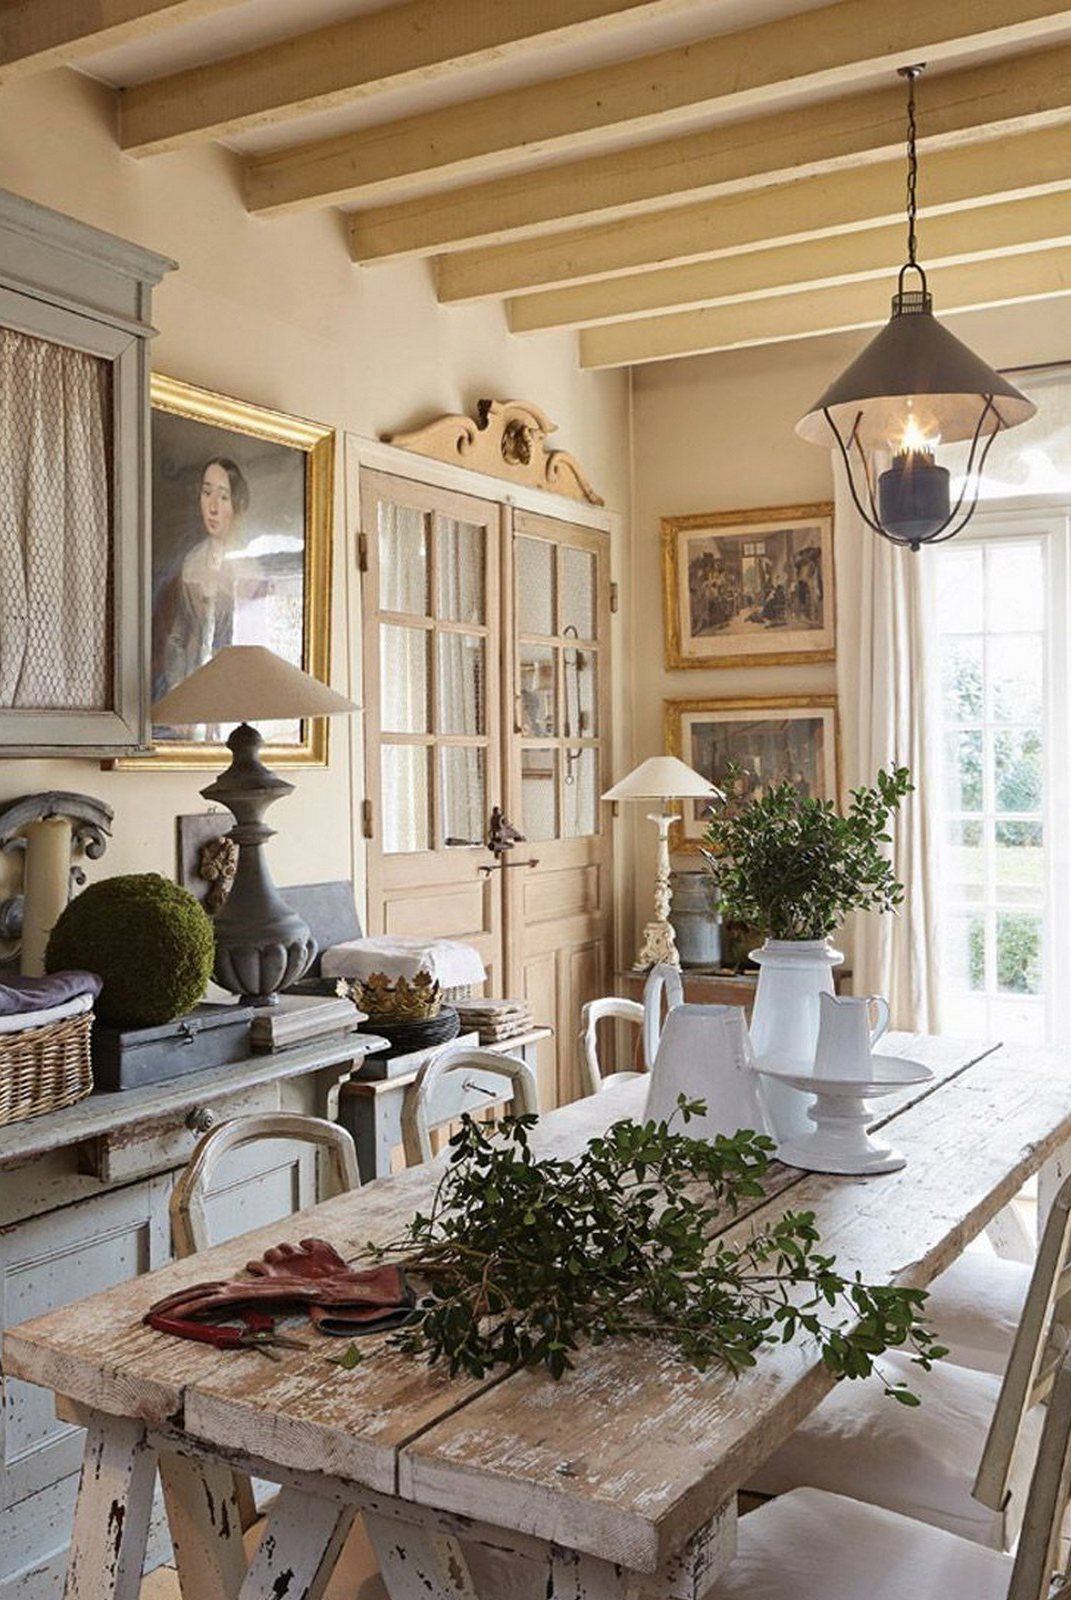 French Country Decorating Ideas by Interior Designer Tracy ...